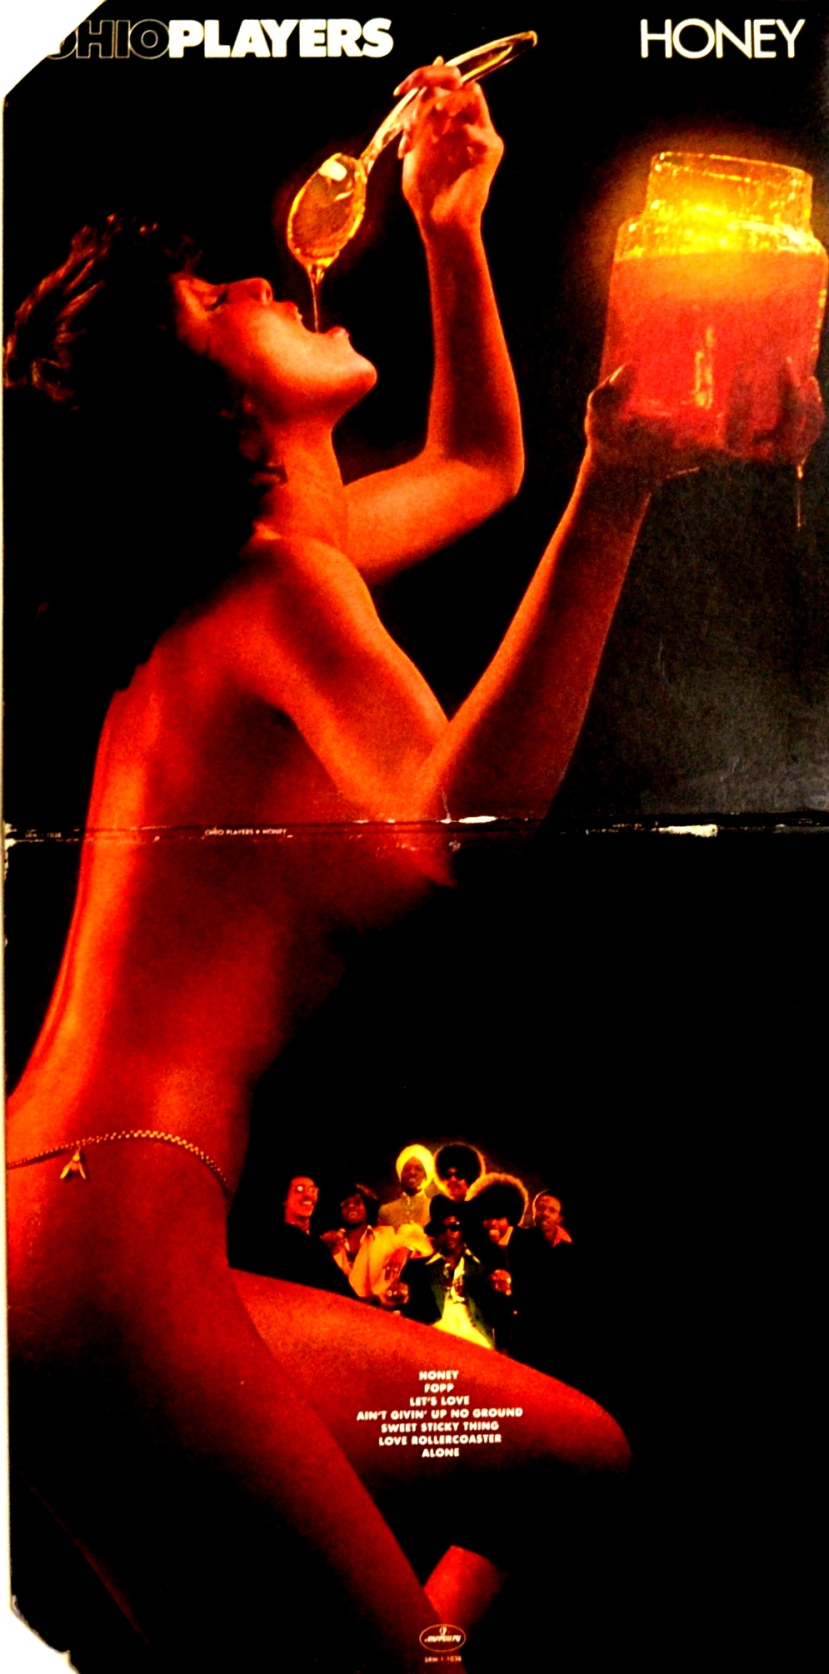 Ohio Players Honey outer